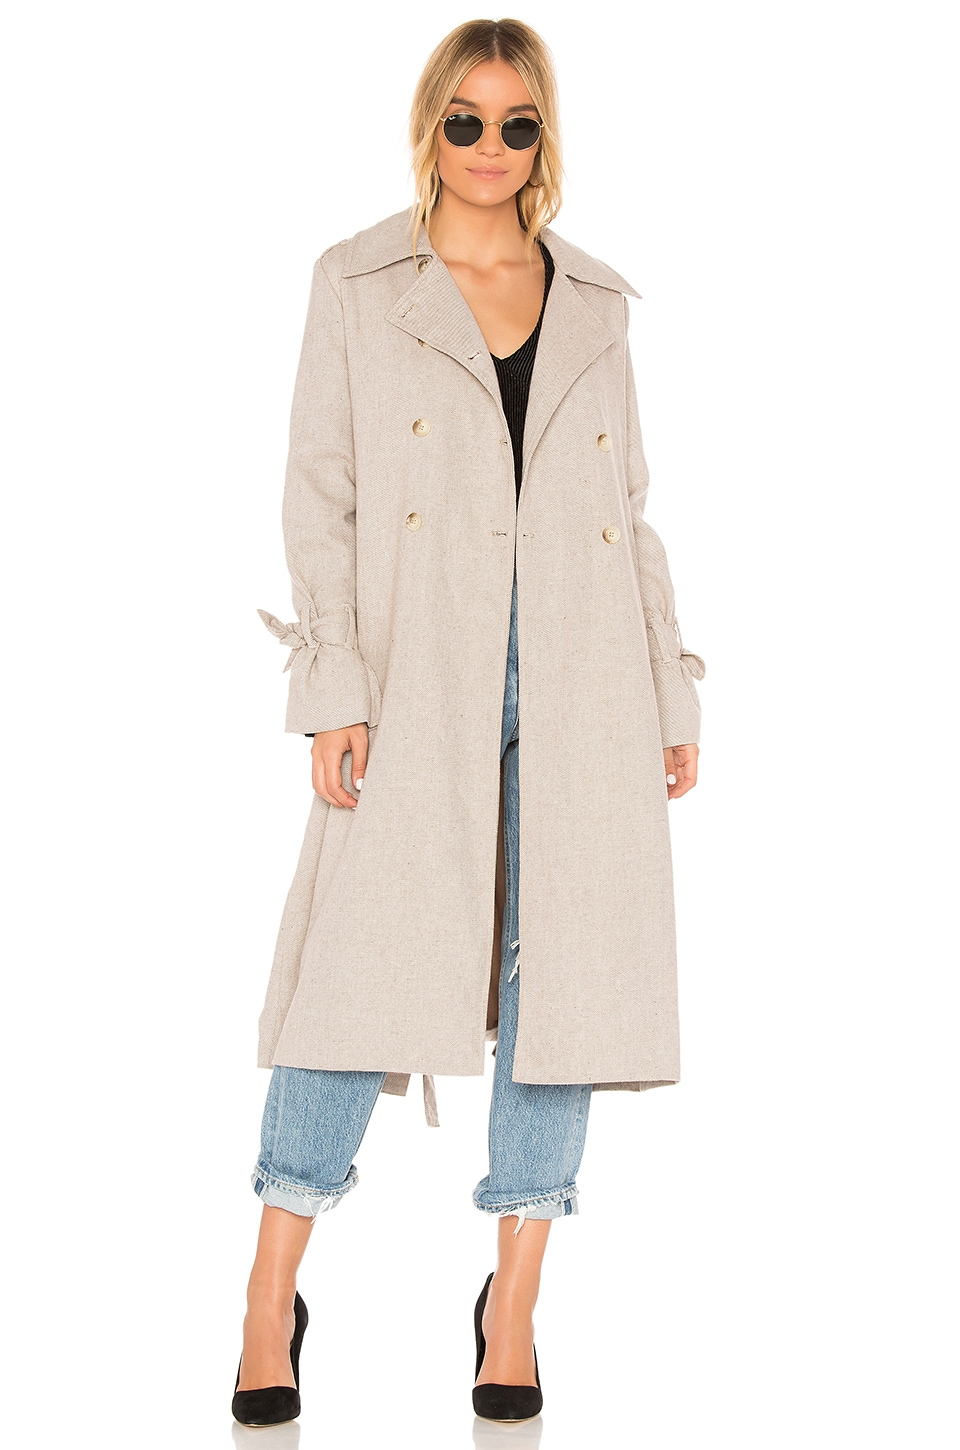 The Fifth Label Eclectic Coat in Light Fawn